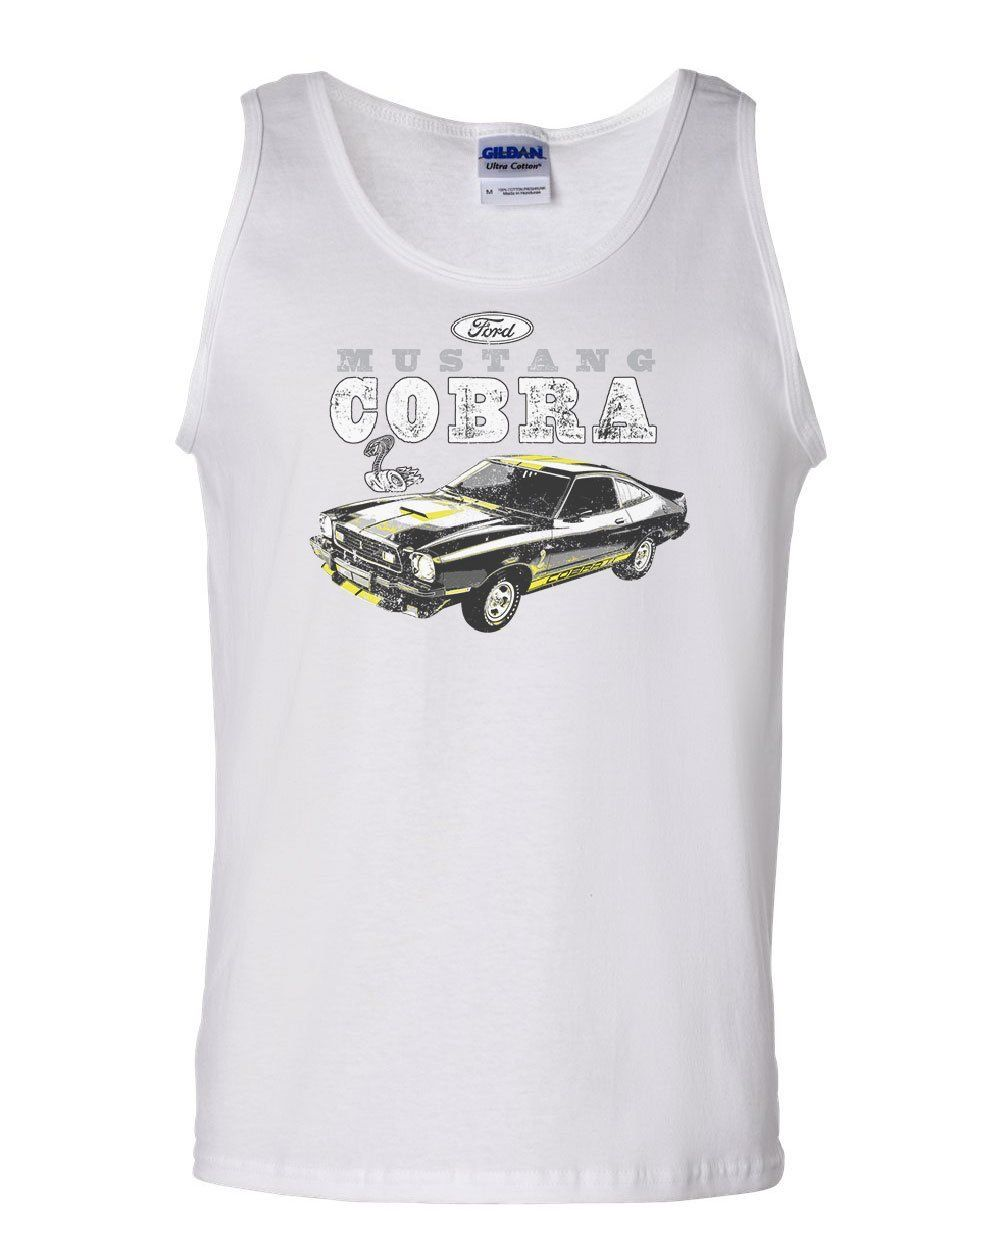 Ford Mustang Cobra Muscle Shirt American Classic Muscle Car Licensed Sleeveless